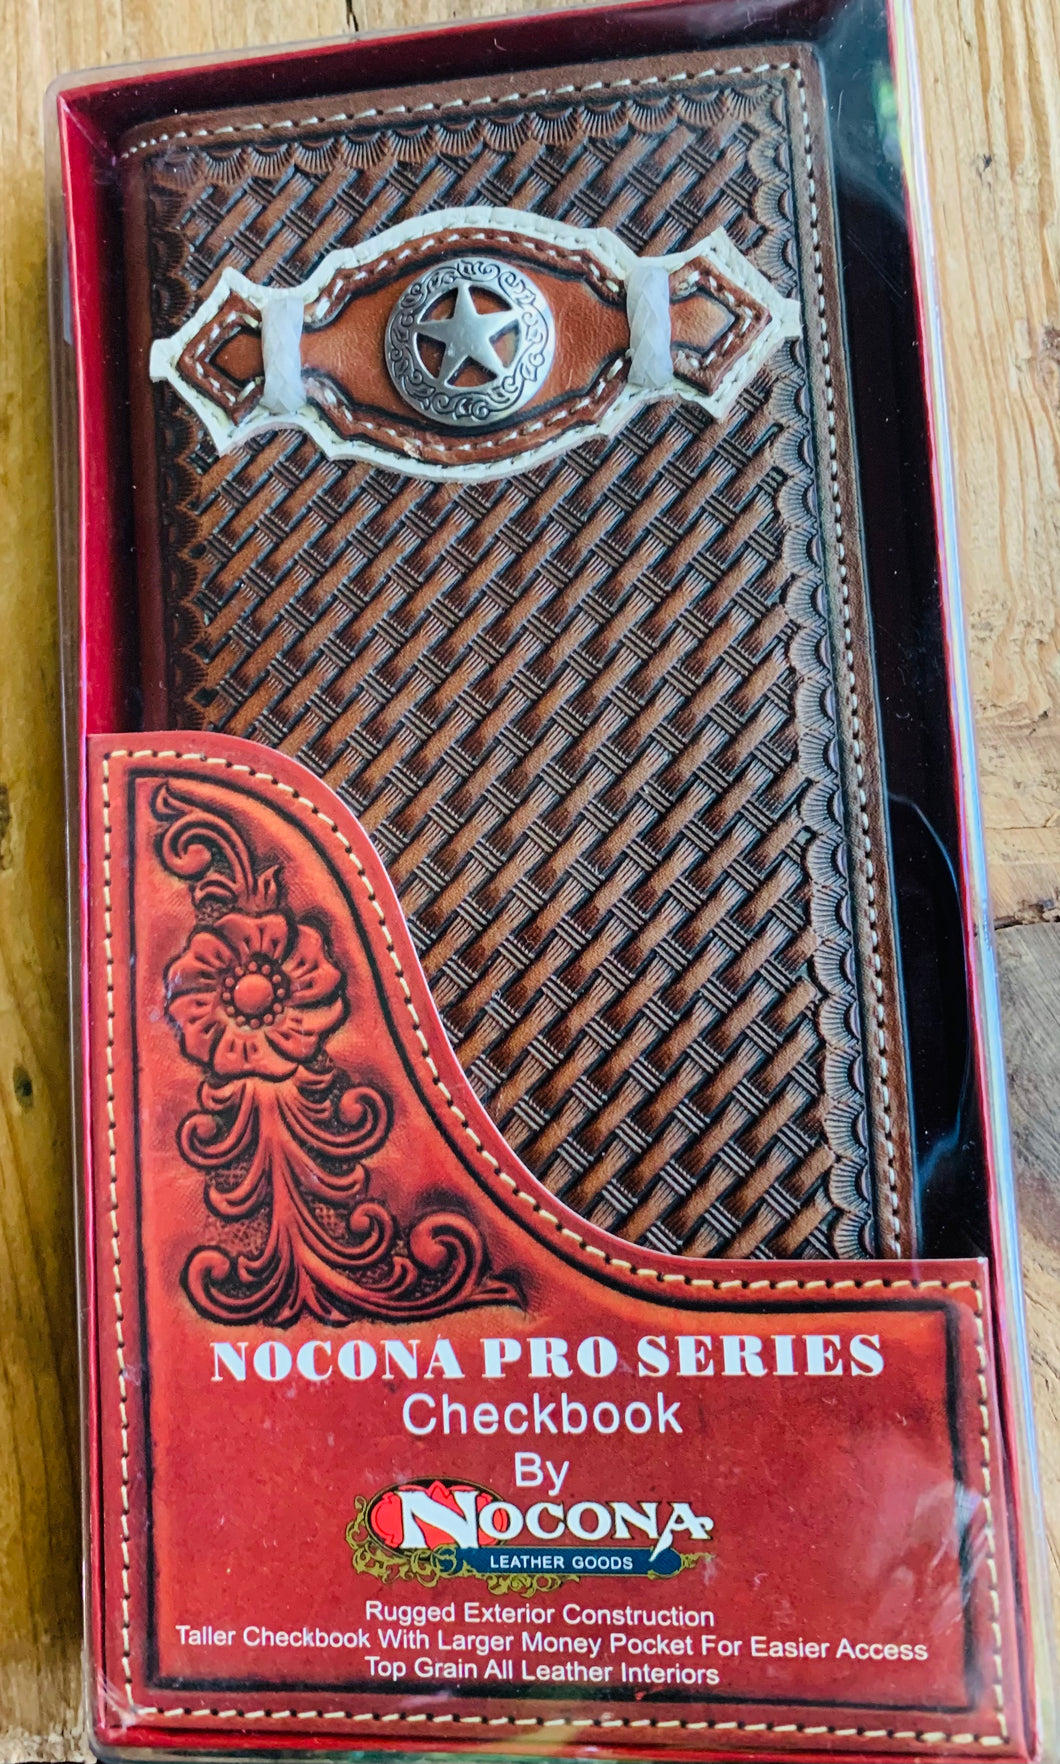 Nocona Pro Series Rodeo Wallet & Checkbook w/ Star